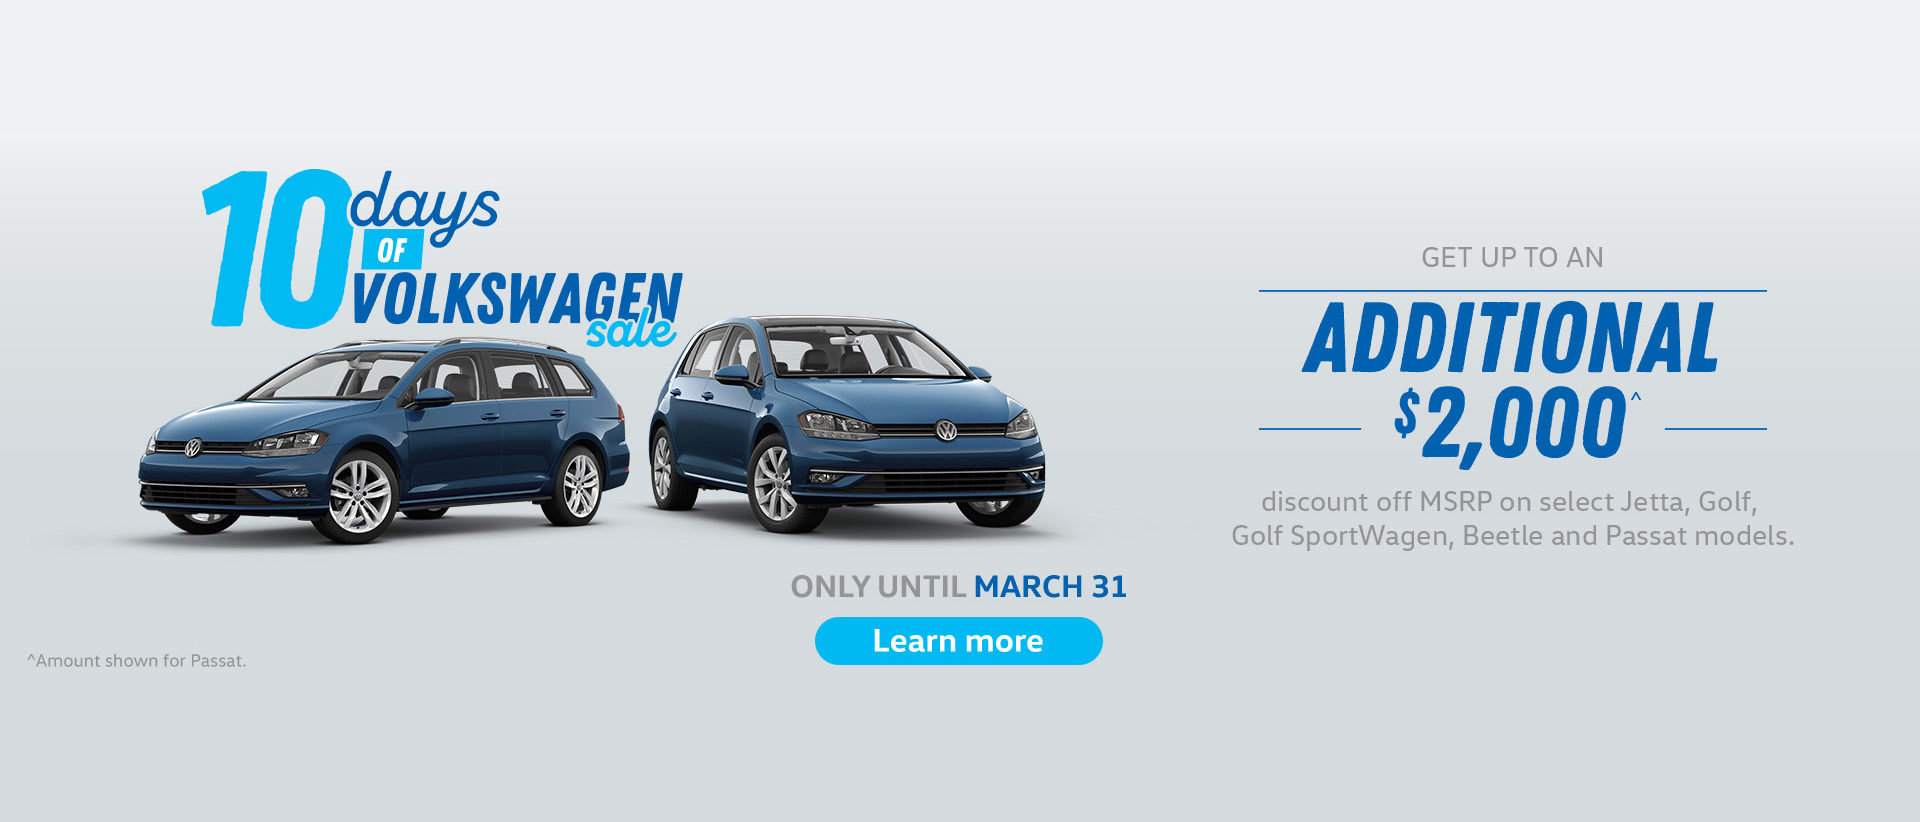 Volkswagen 10 Day Sale Western Regions